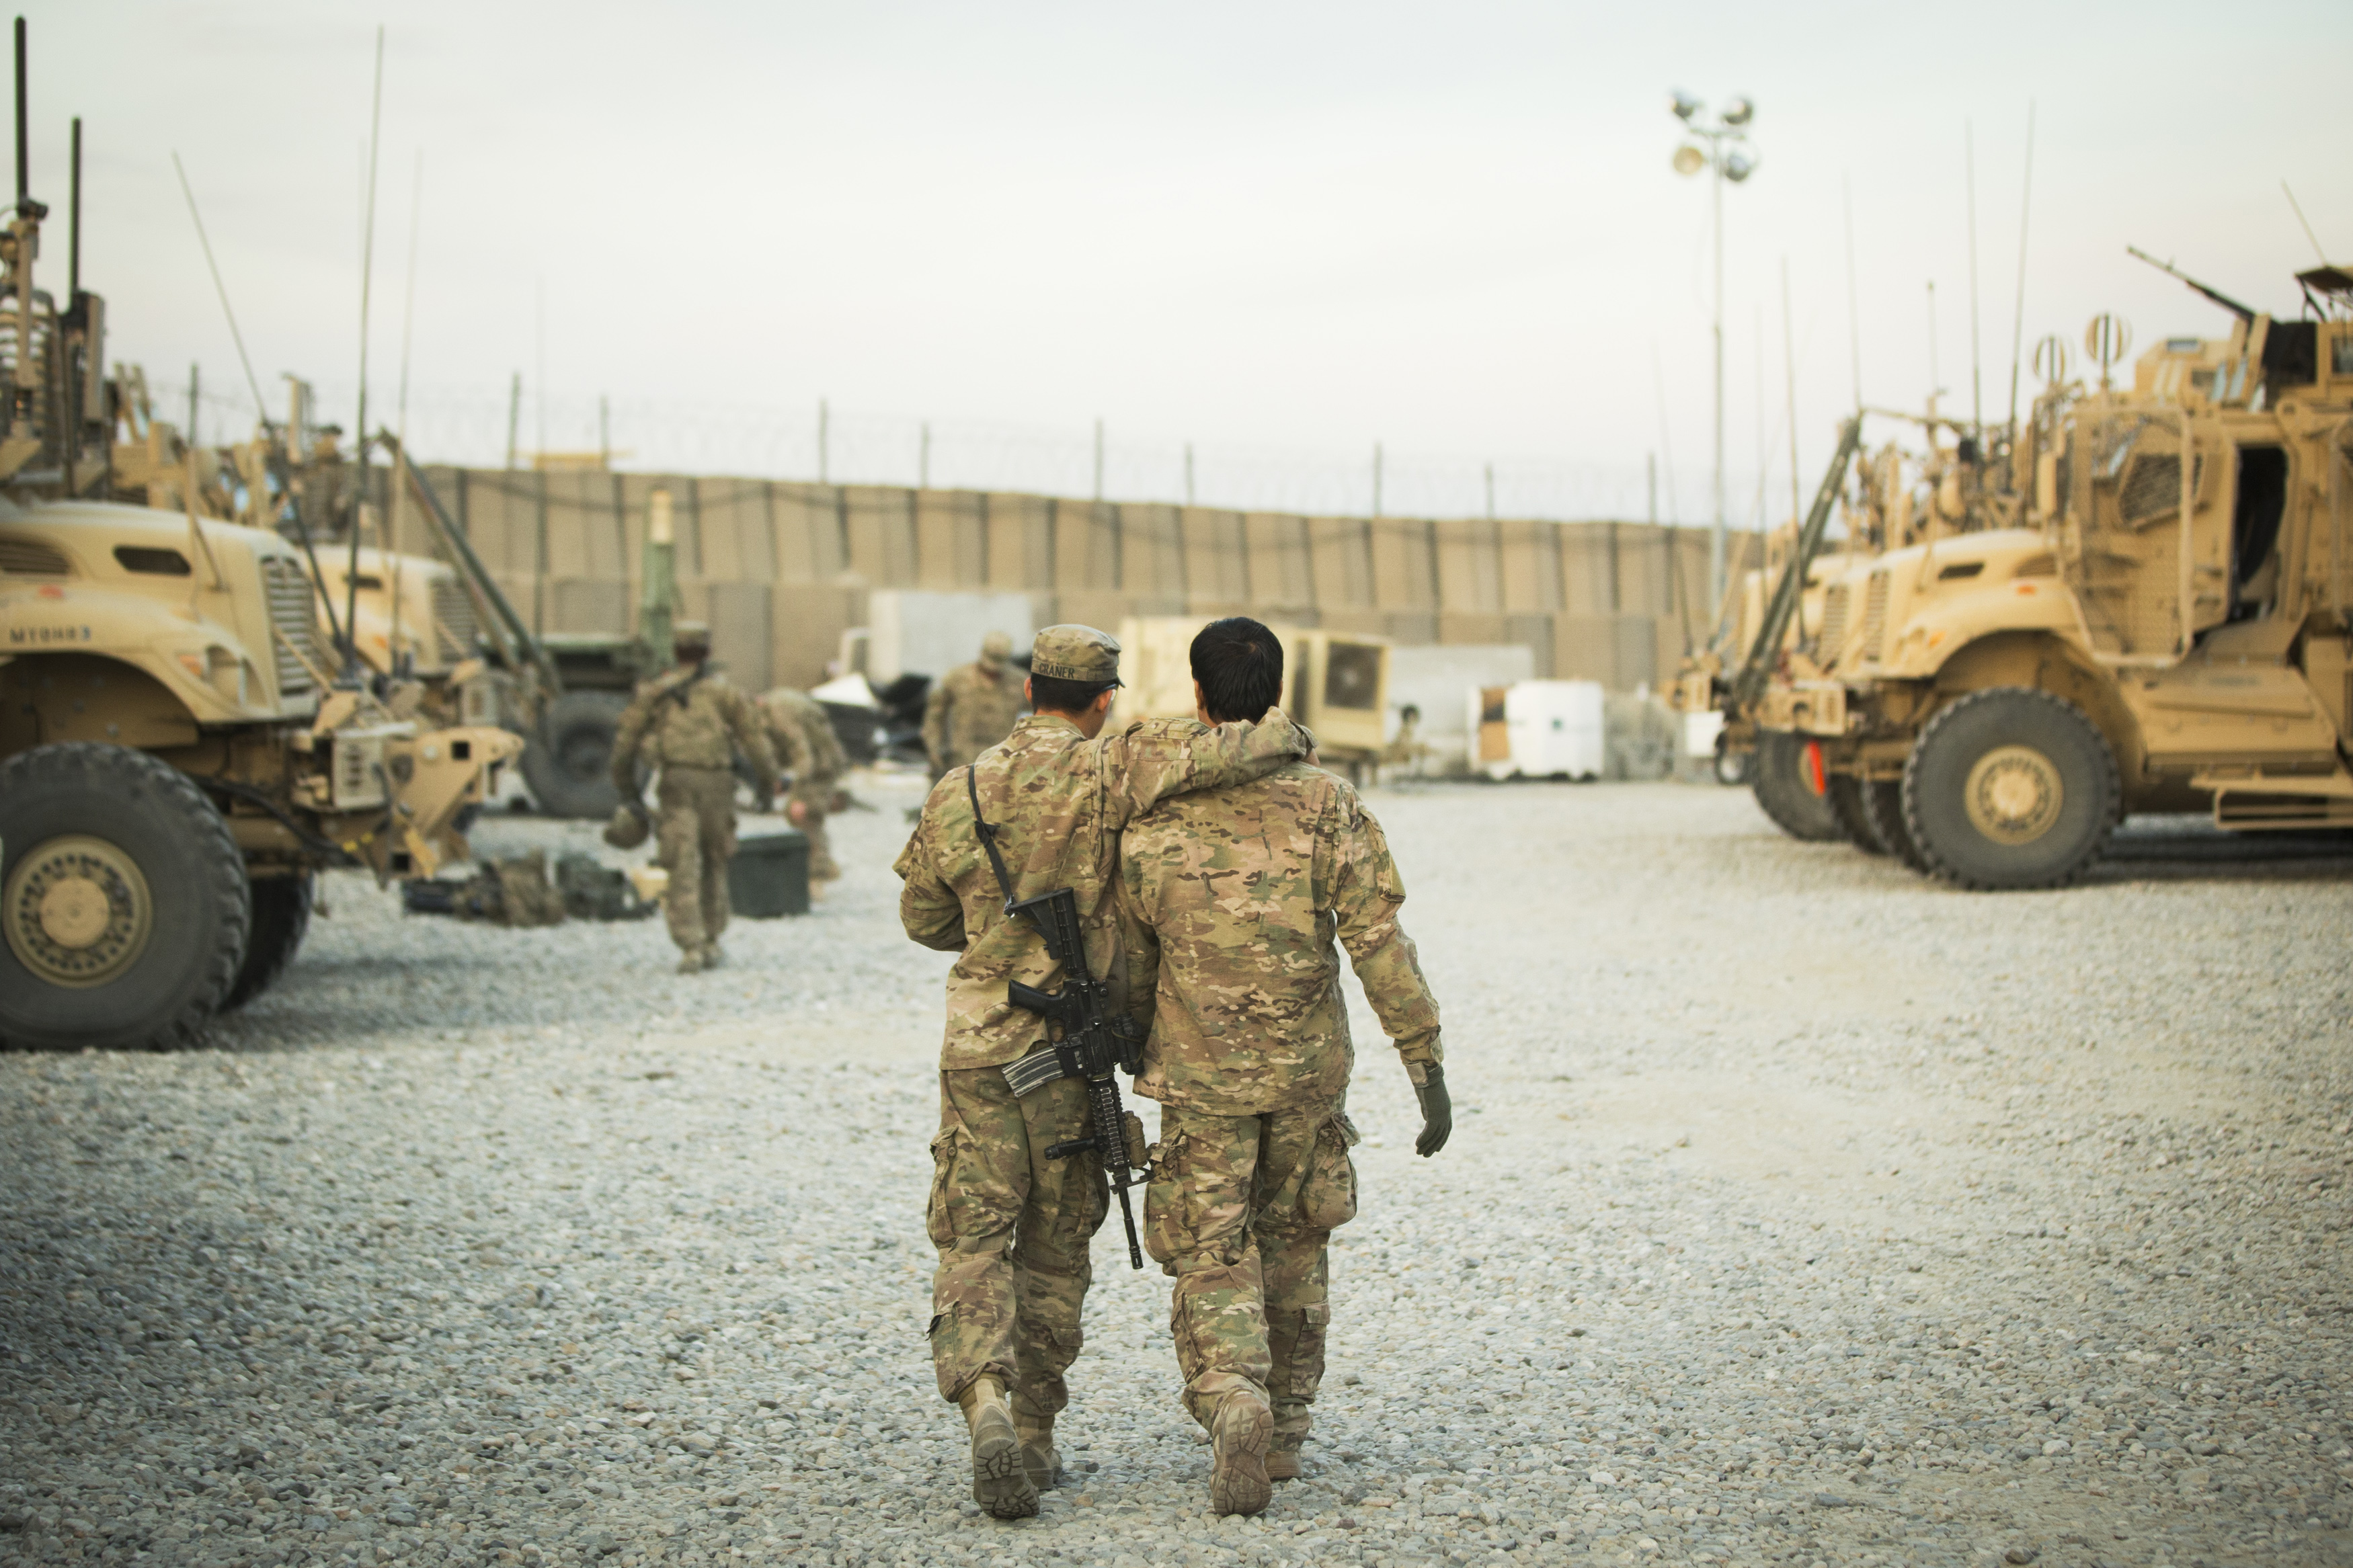 war in afghanistan research paper The war in afghanistan research essay, buy custom the war in afghanistan research essay paper cheap, the war in afghanistan research essay paper sample, the war.